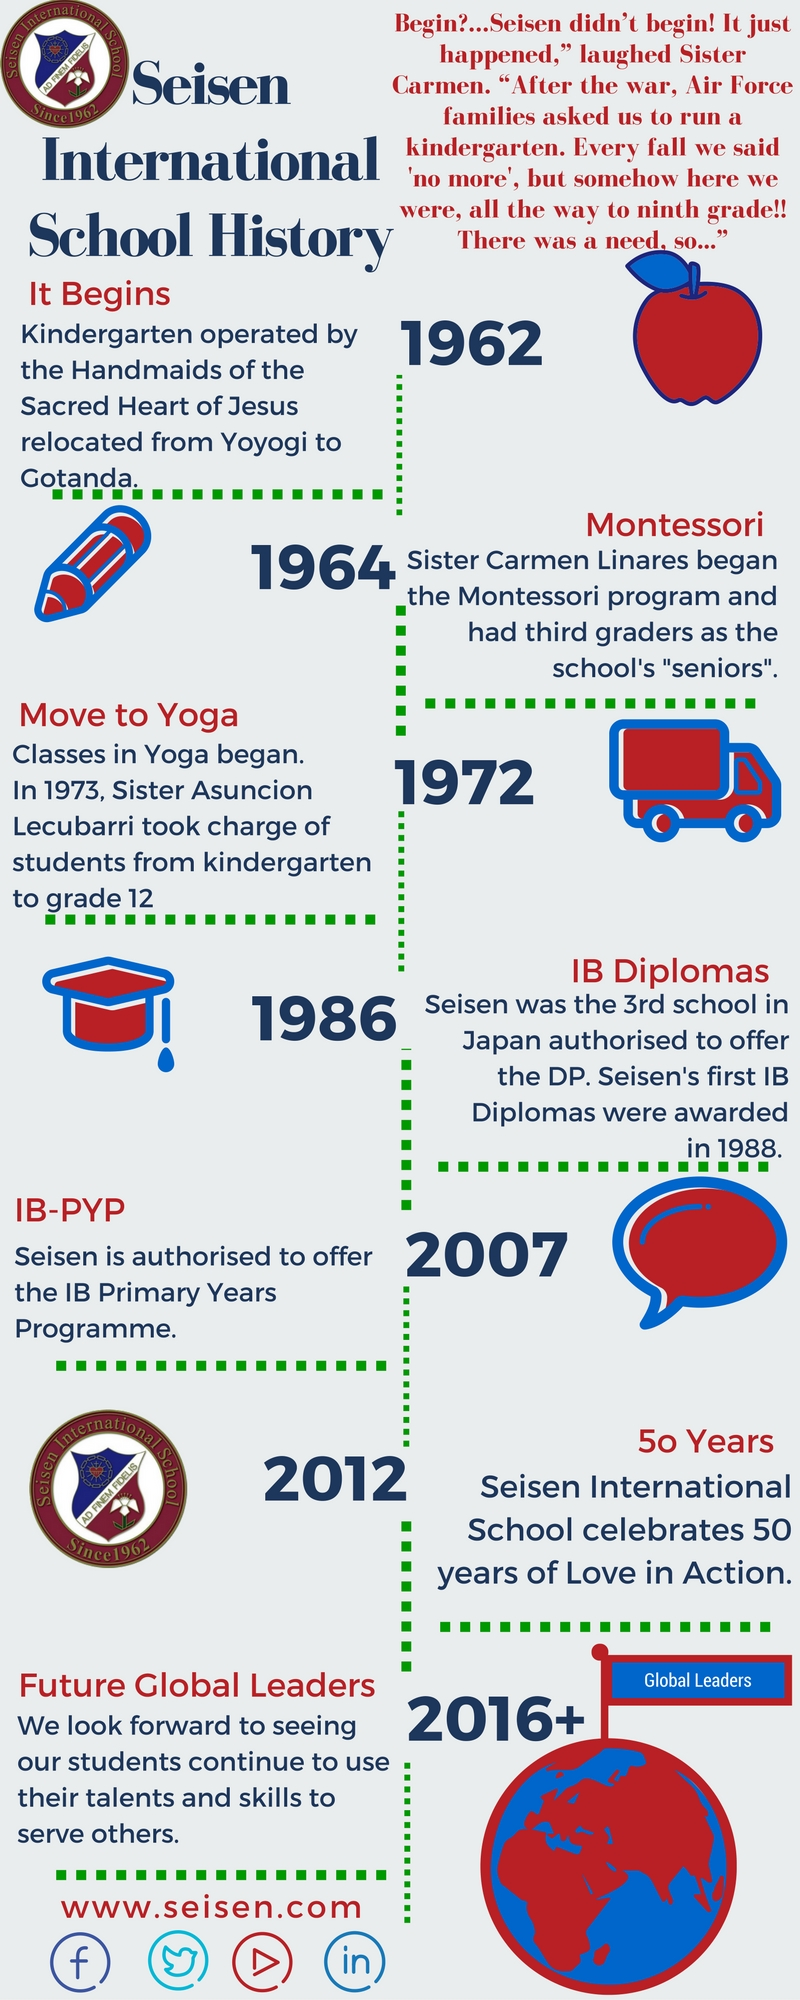 Seisen International School History